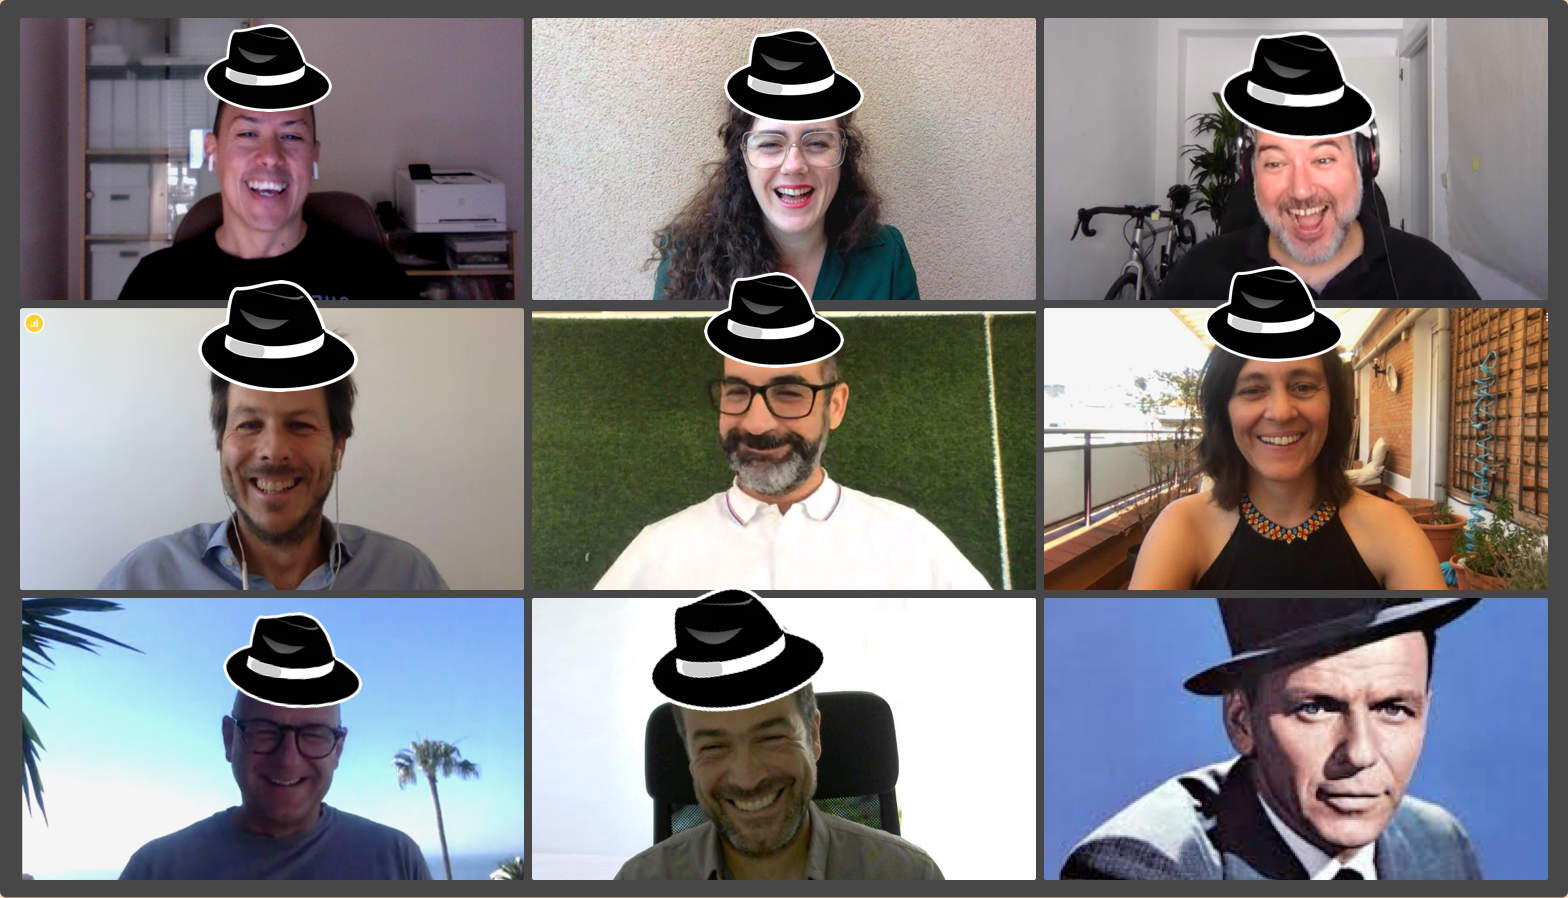 Videoconference with all members of the ilios team, all laughing.